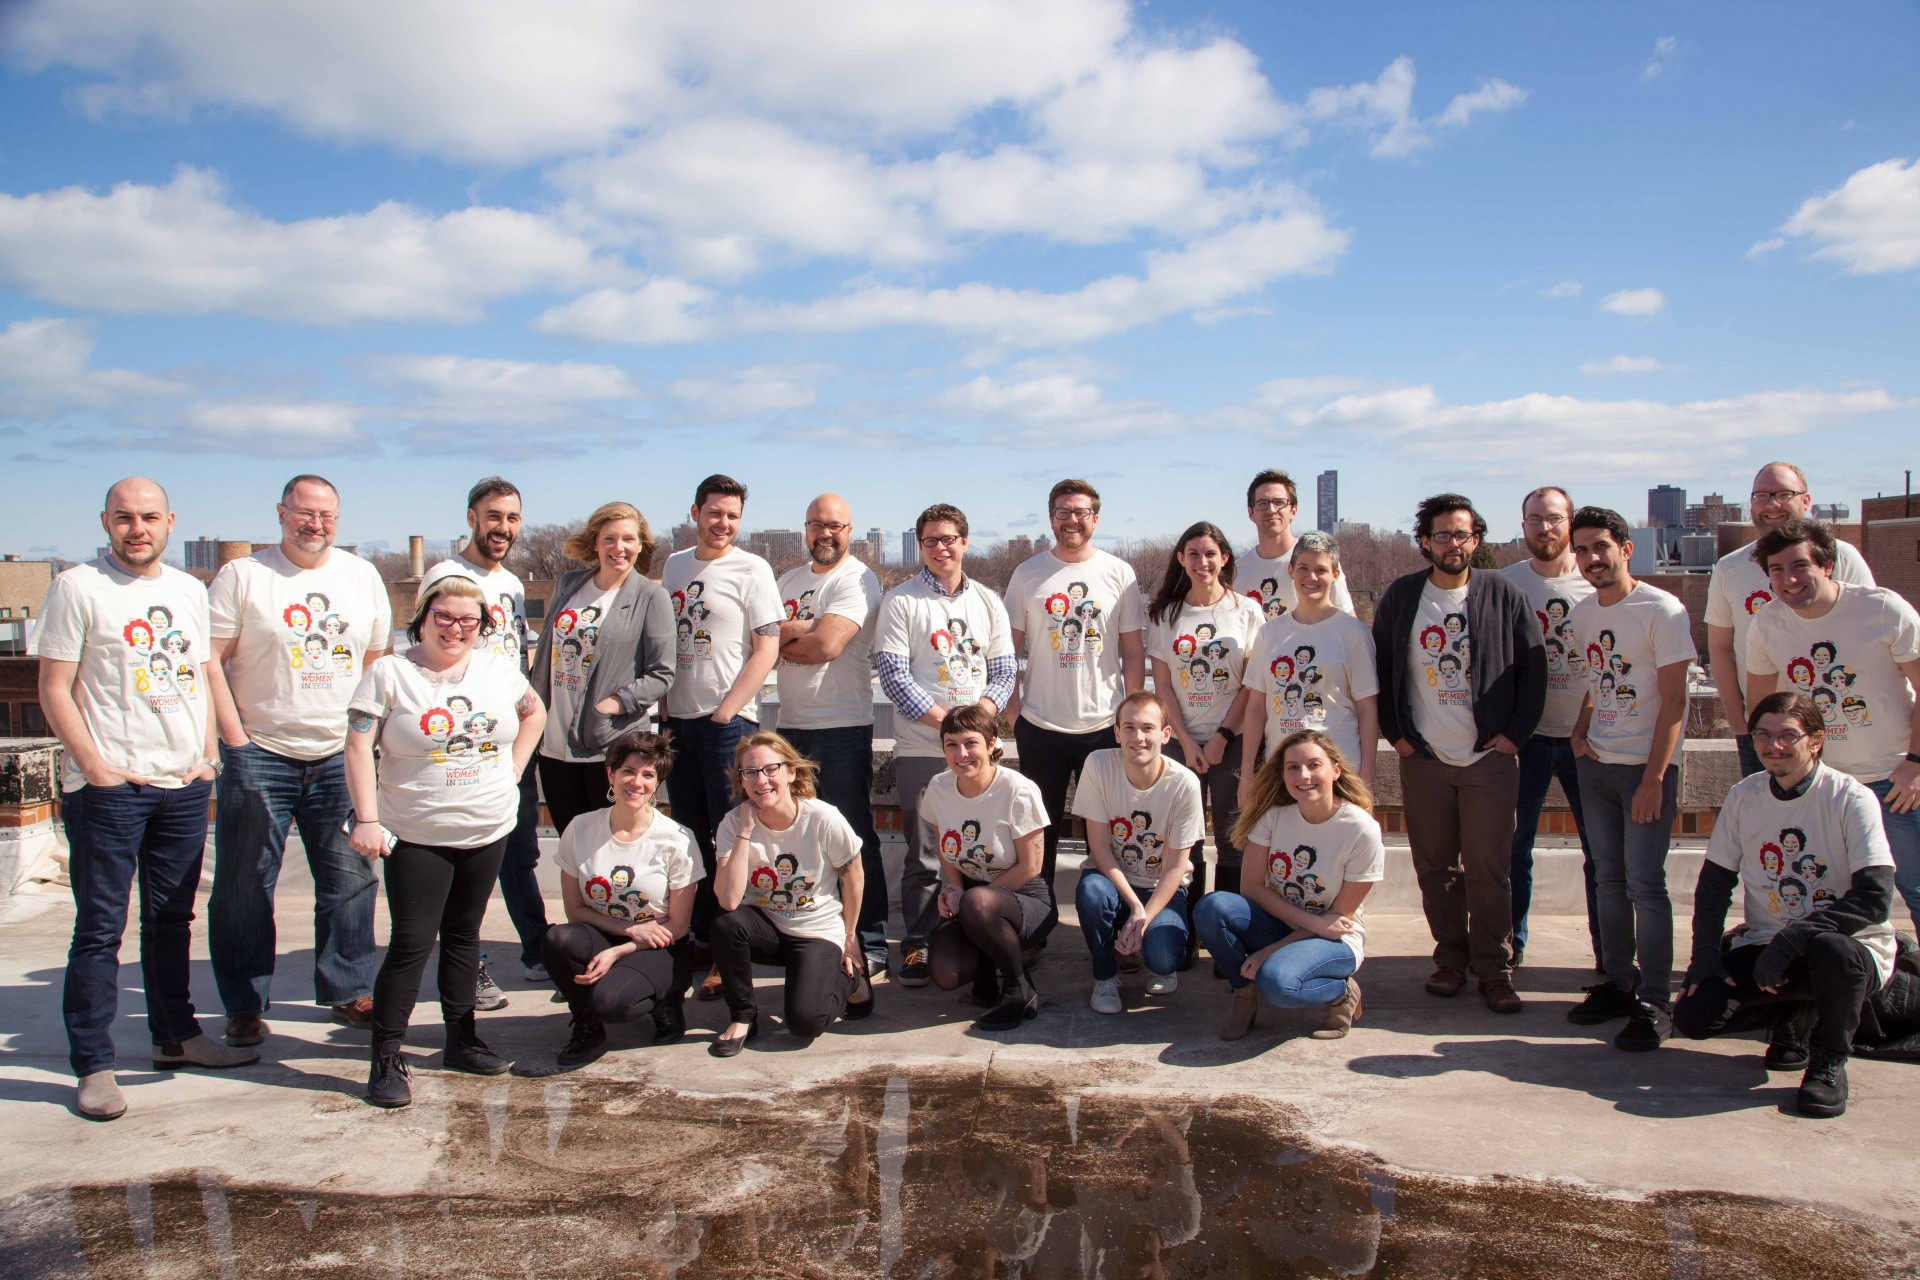 NeonCRM staff photo of our women in tech shirt. We're proud to be following in the footsteps of these inspiring women!